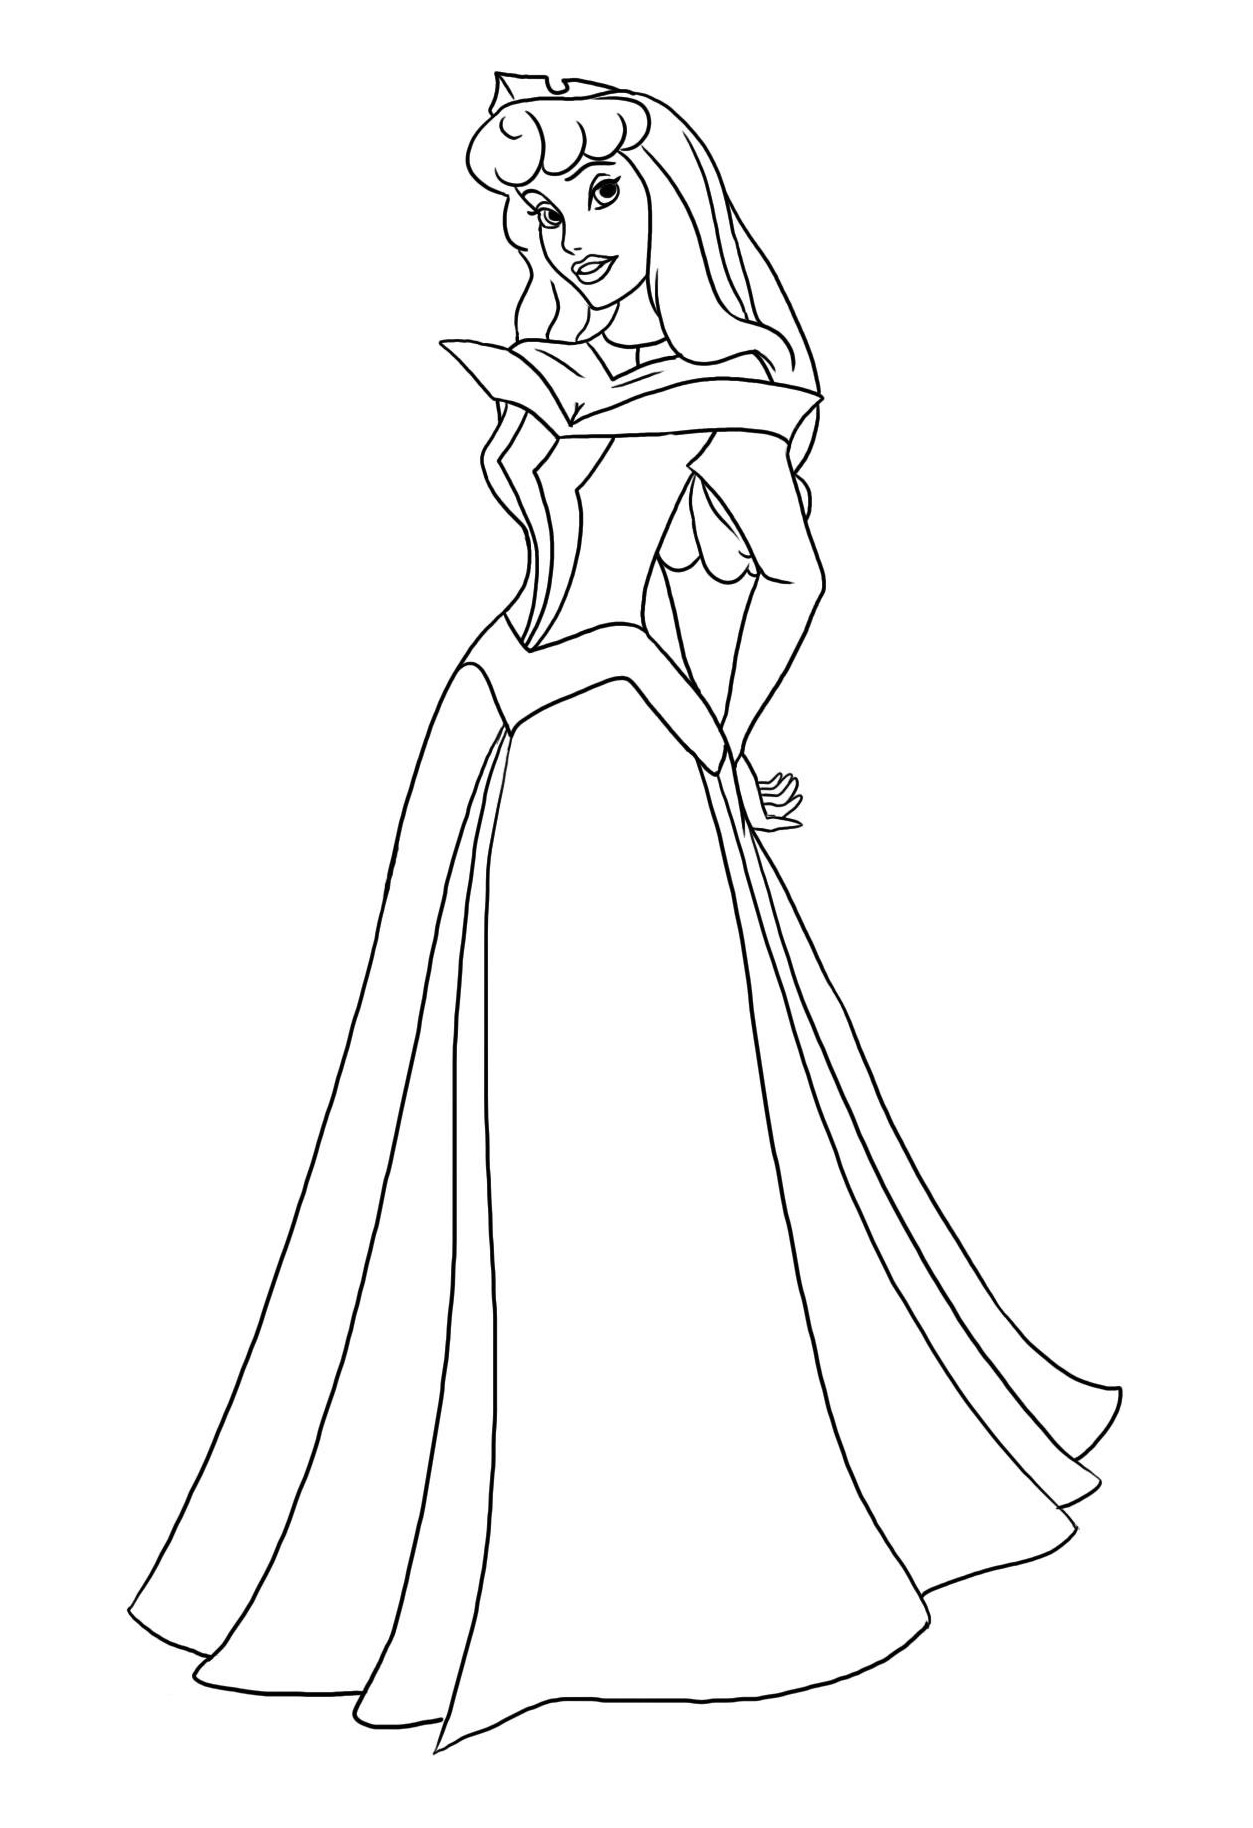 Coloring Pages Cartoons Sleeping Beauty